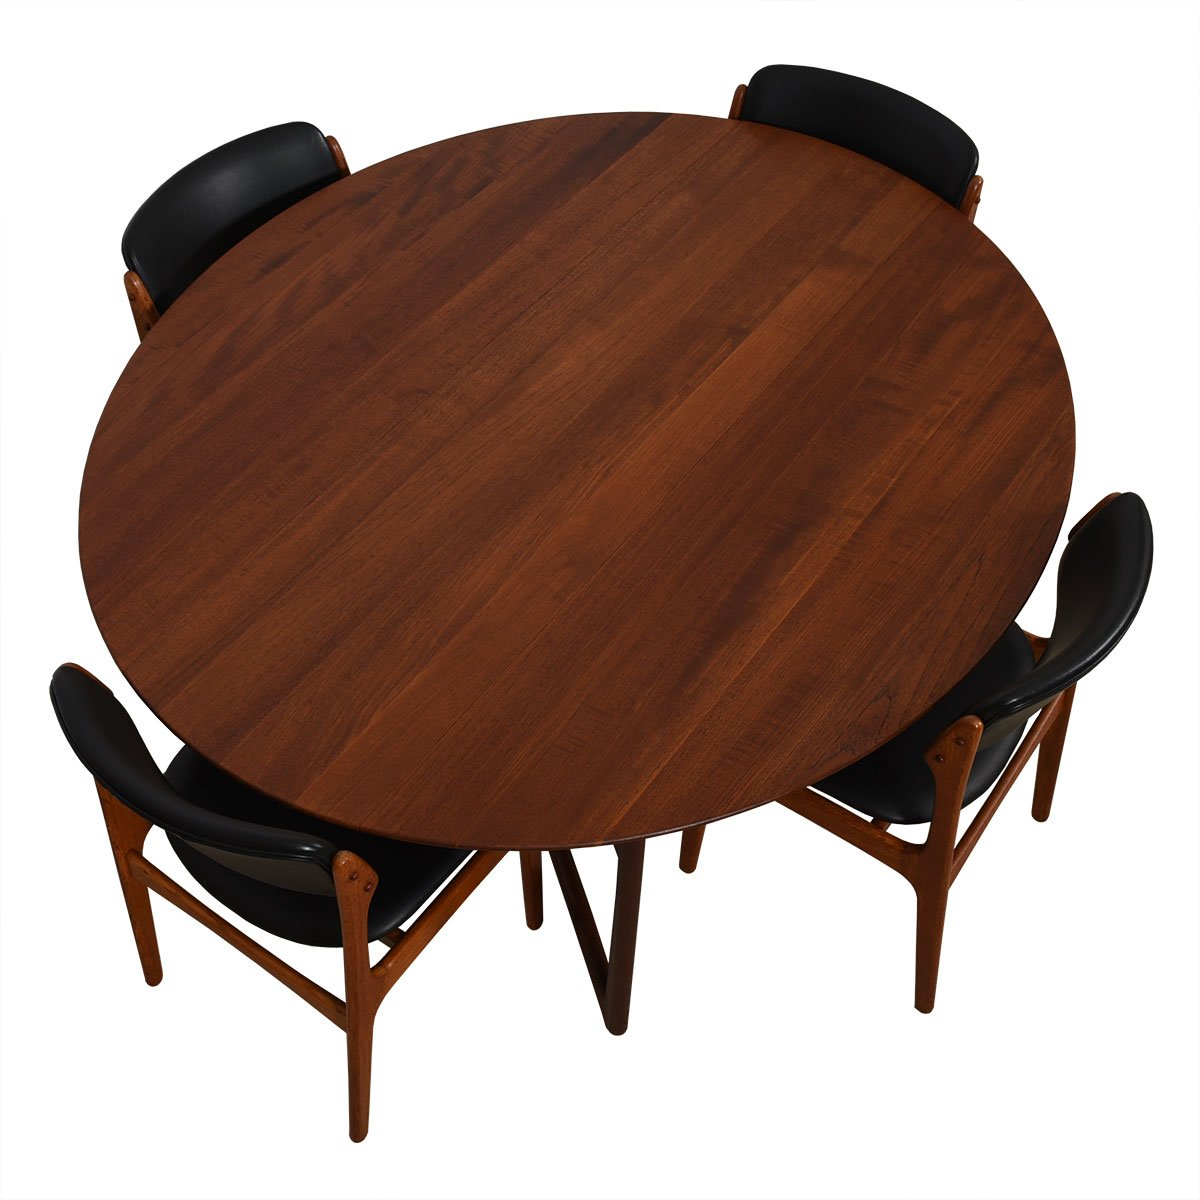 Danish Modern Teak Oval Drop-Leaf Dining Table